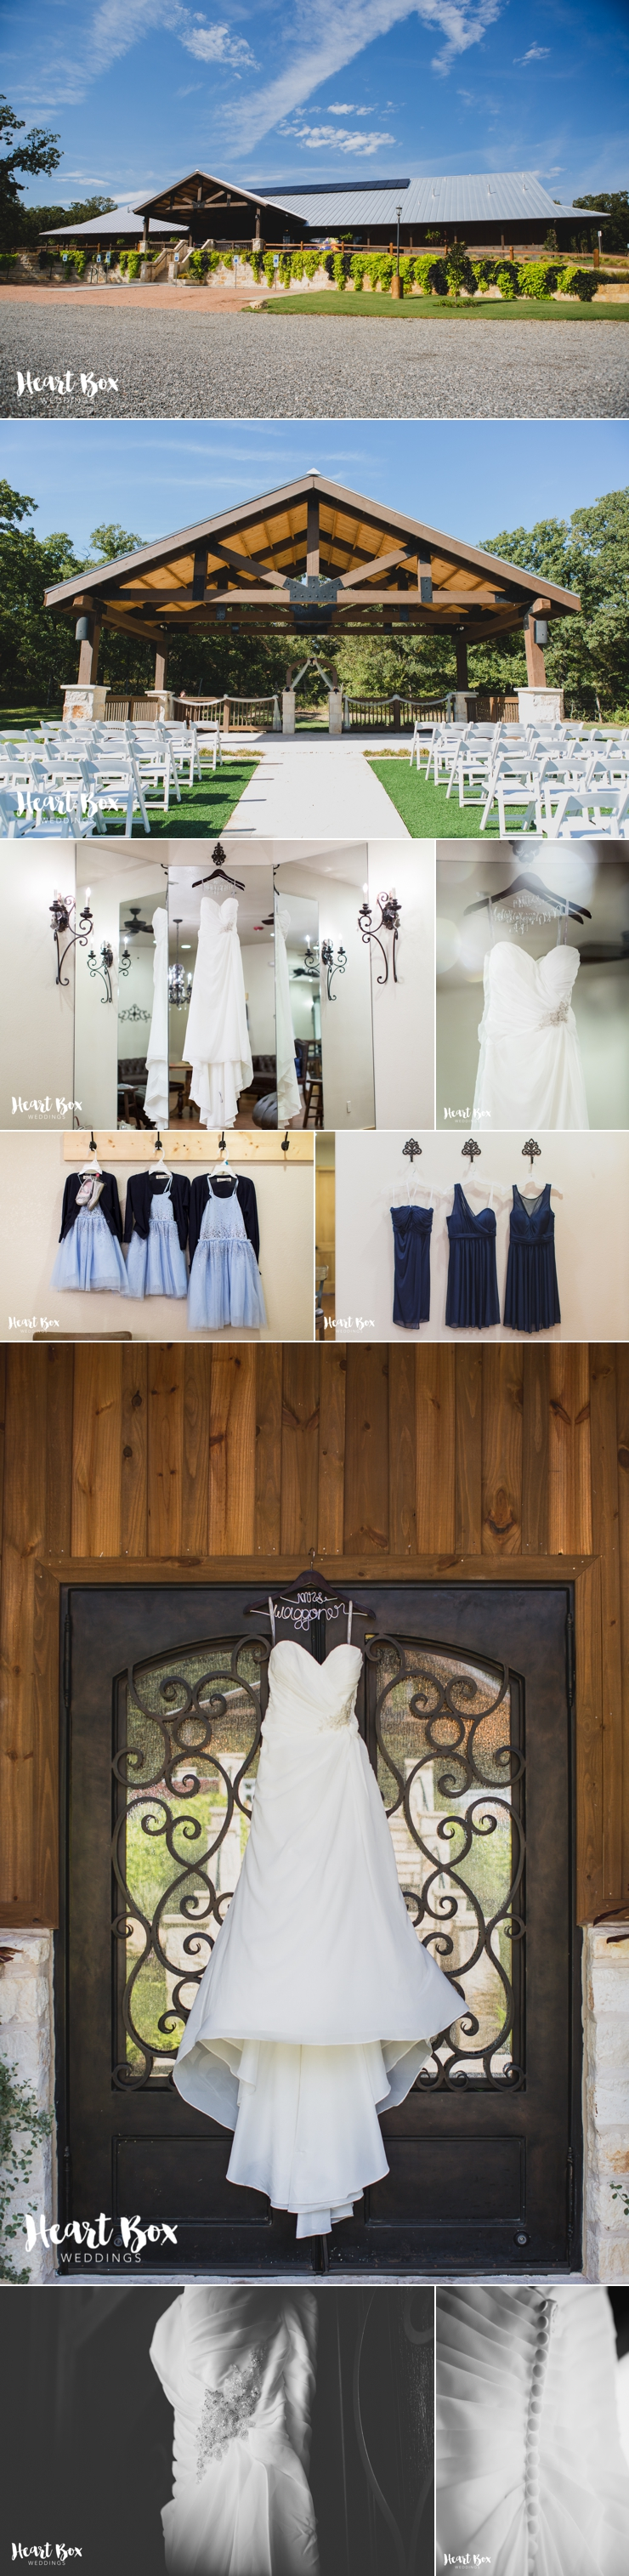 Waggoner Wedding Collages 1.jpg